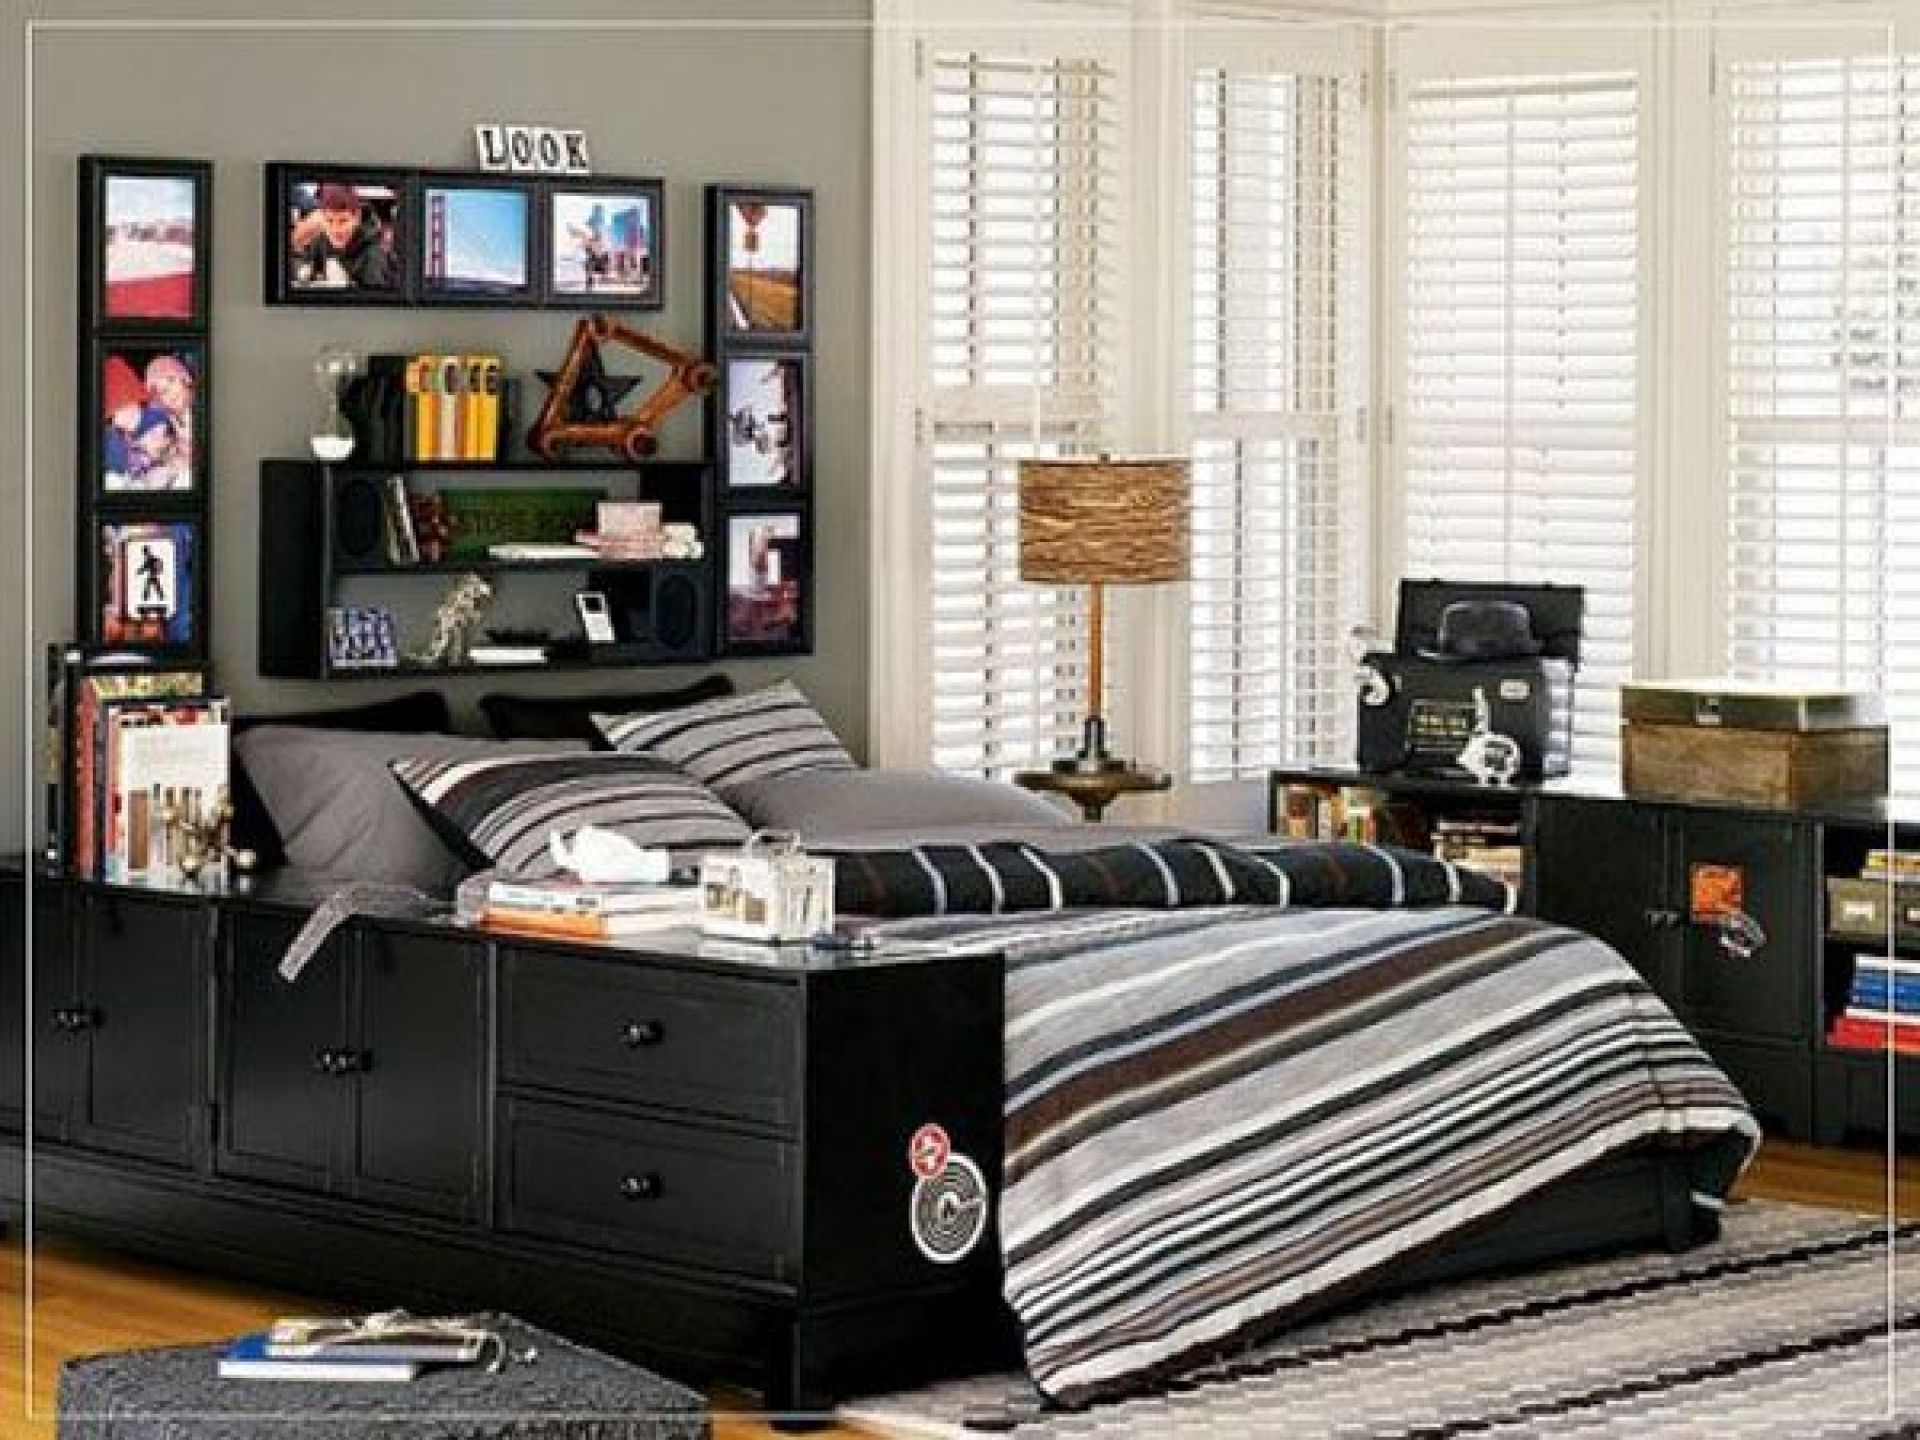 Cool Room Ideas For Teenagers Endearing Bedroom Ideas For Teenage Guys With Small Rooms  Google Search . 2017